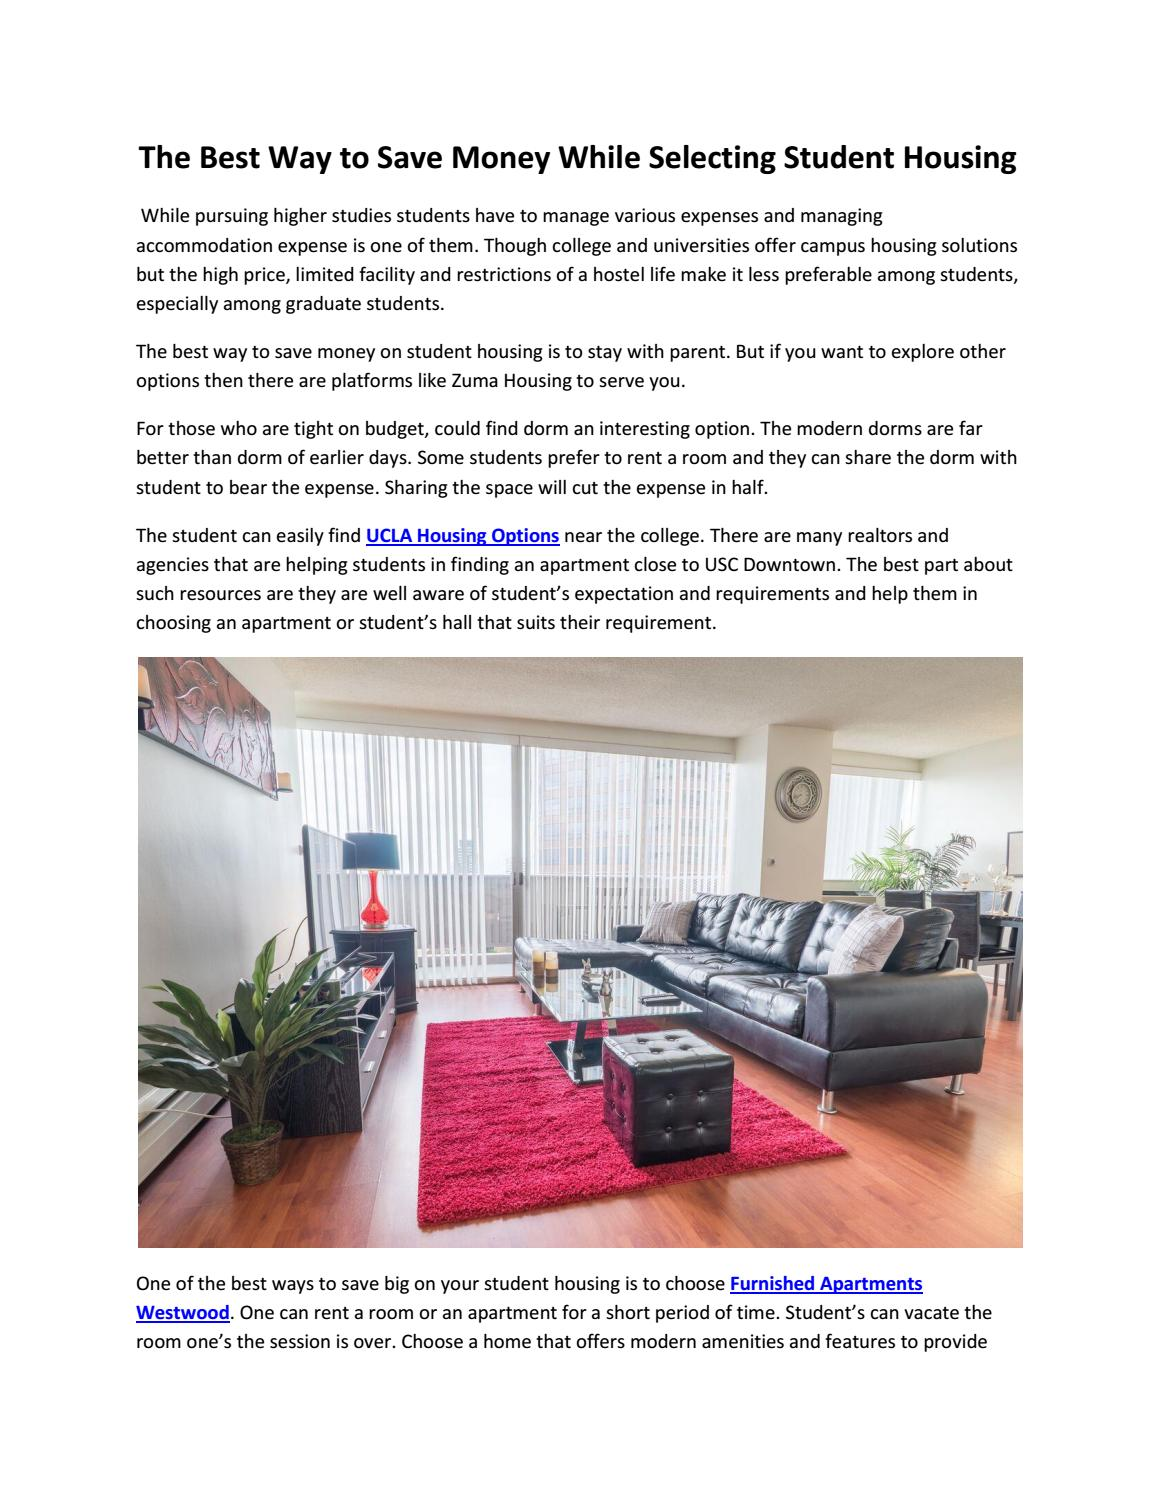 The Best Way To Save Money While Selecting Student Housing By  Mortgagefraudexaminers   Issuu